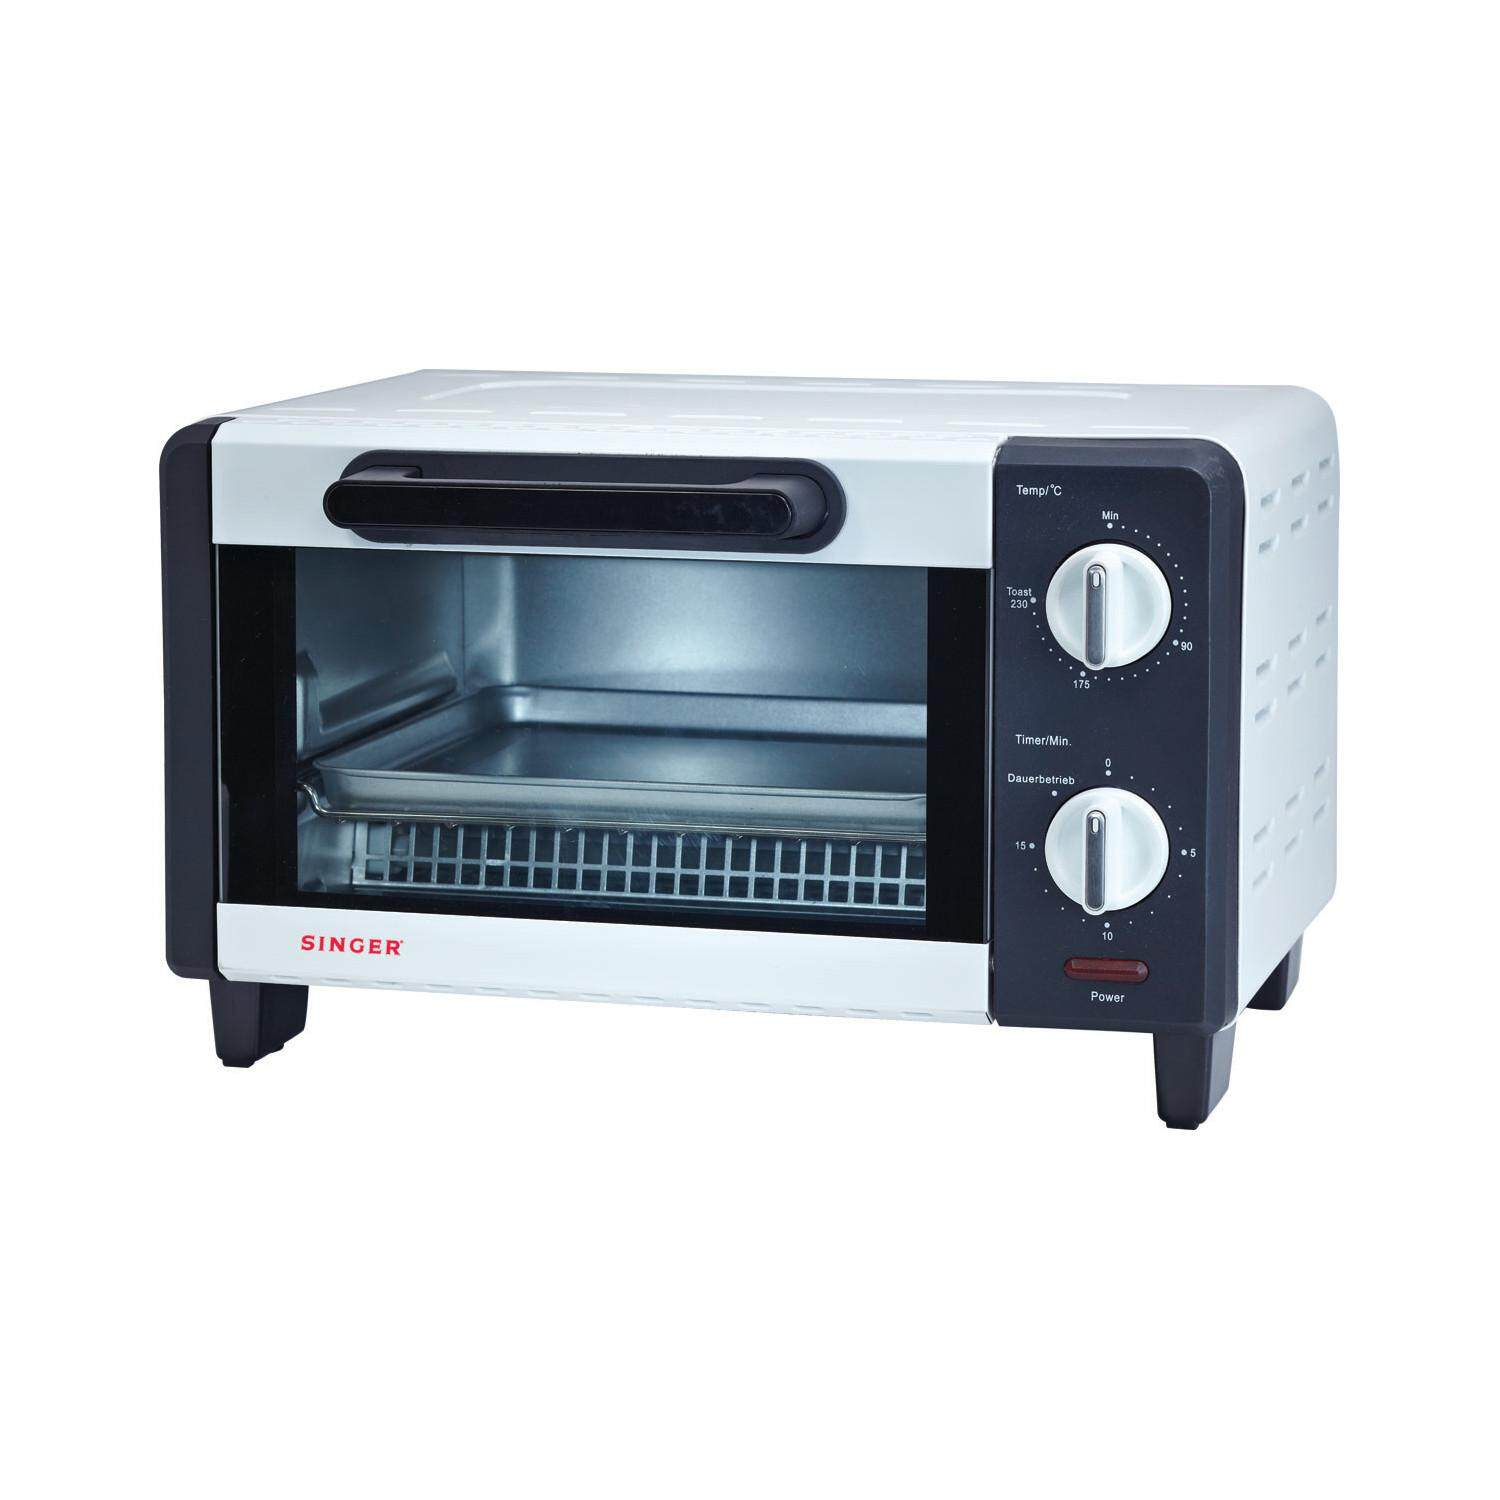 Singer To900 Toaster Oven 9l